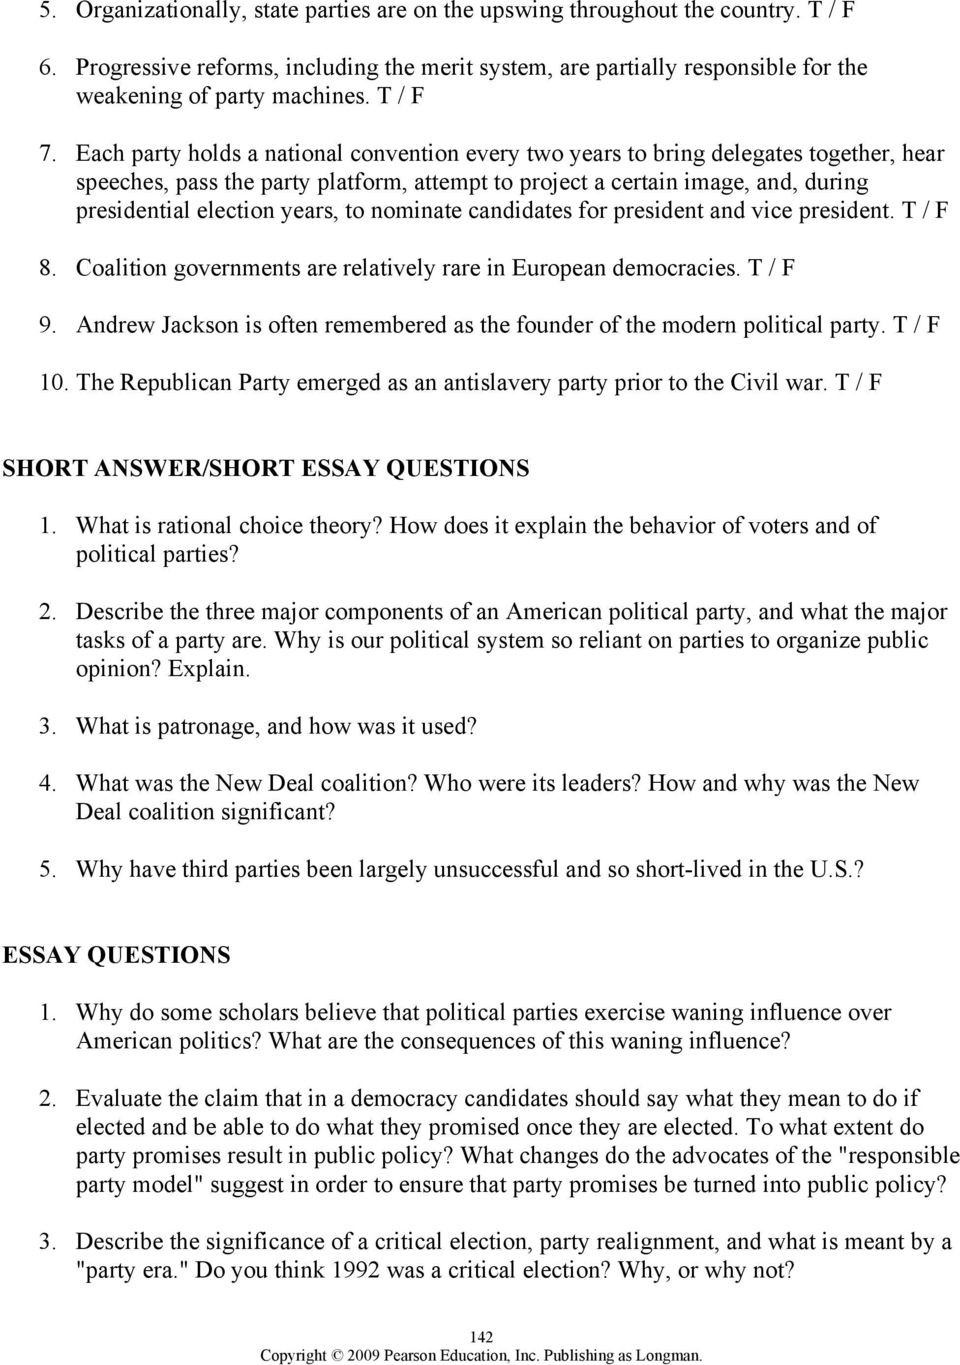 worksheet The Populist Movement The Value Of Third Parties Worksheet Answers chapter 8 political parties outline pdf each party holds a national convention every two years to bring delegates together hear speeches